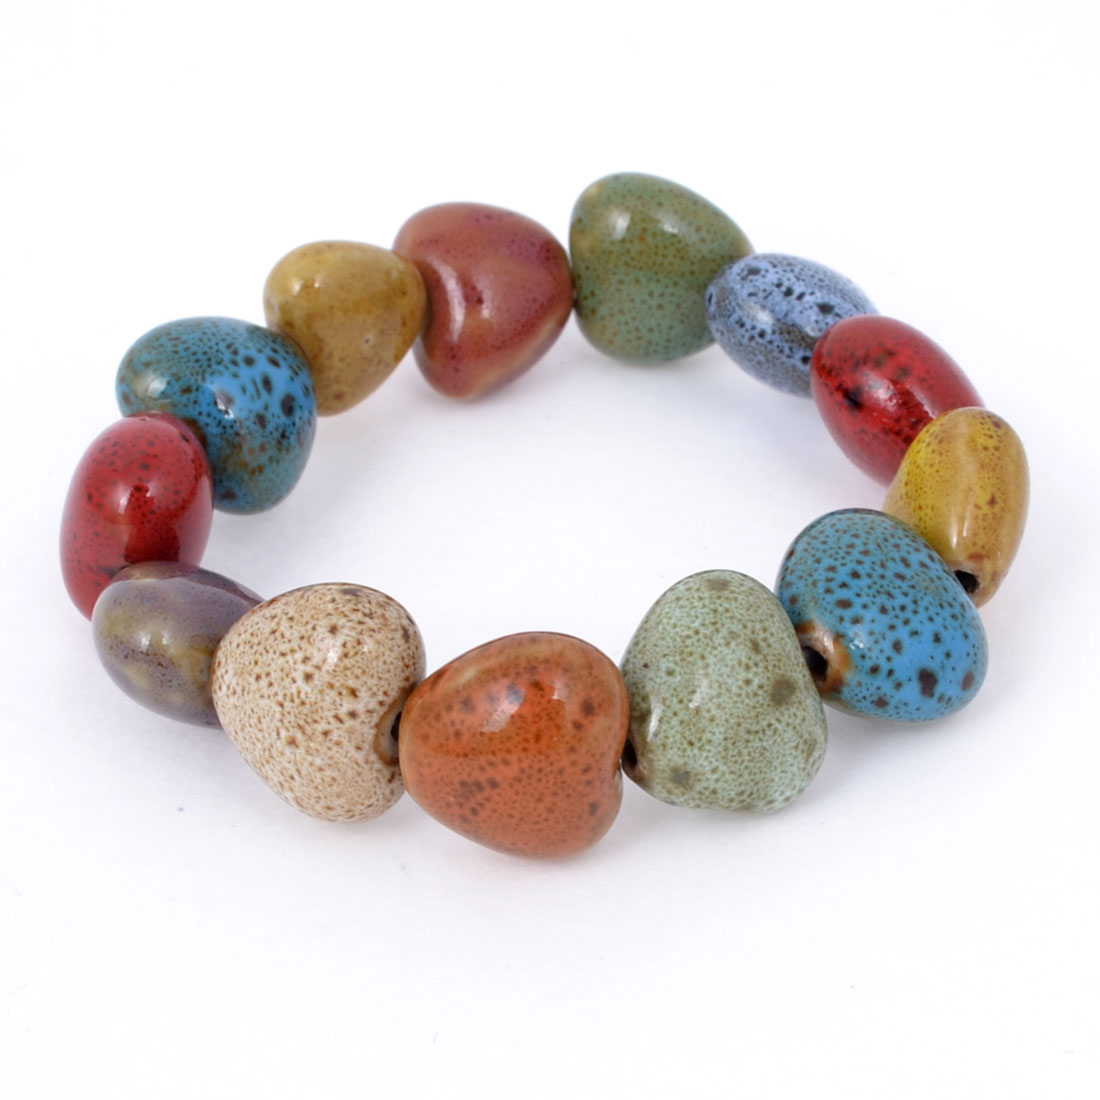 Heart Shape Ceramic Beads Stretchy Bracelet Wrist Ornament Corlorful for Ladies